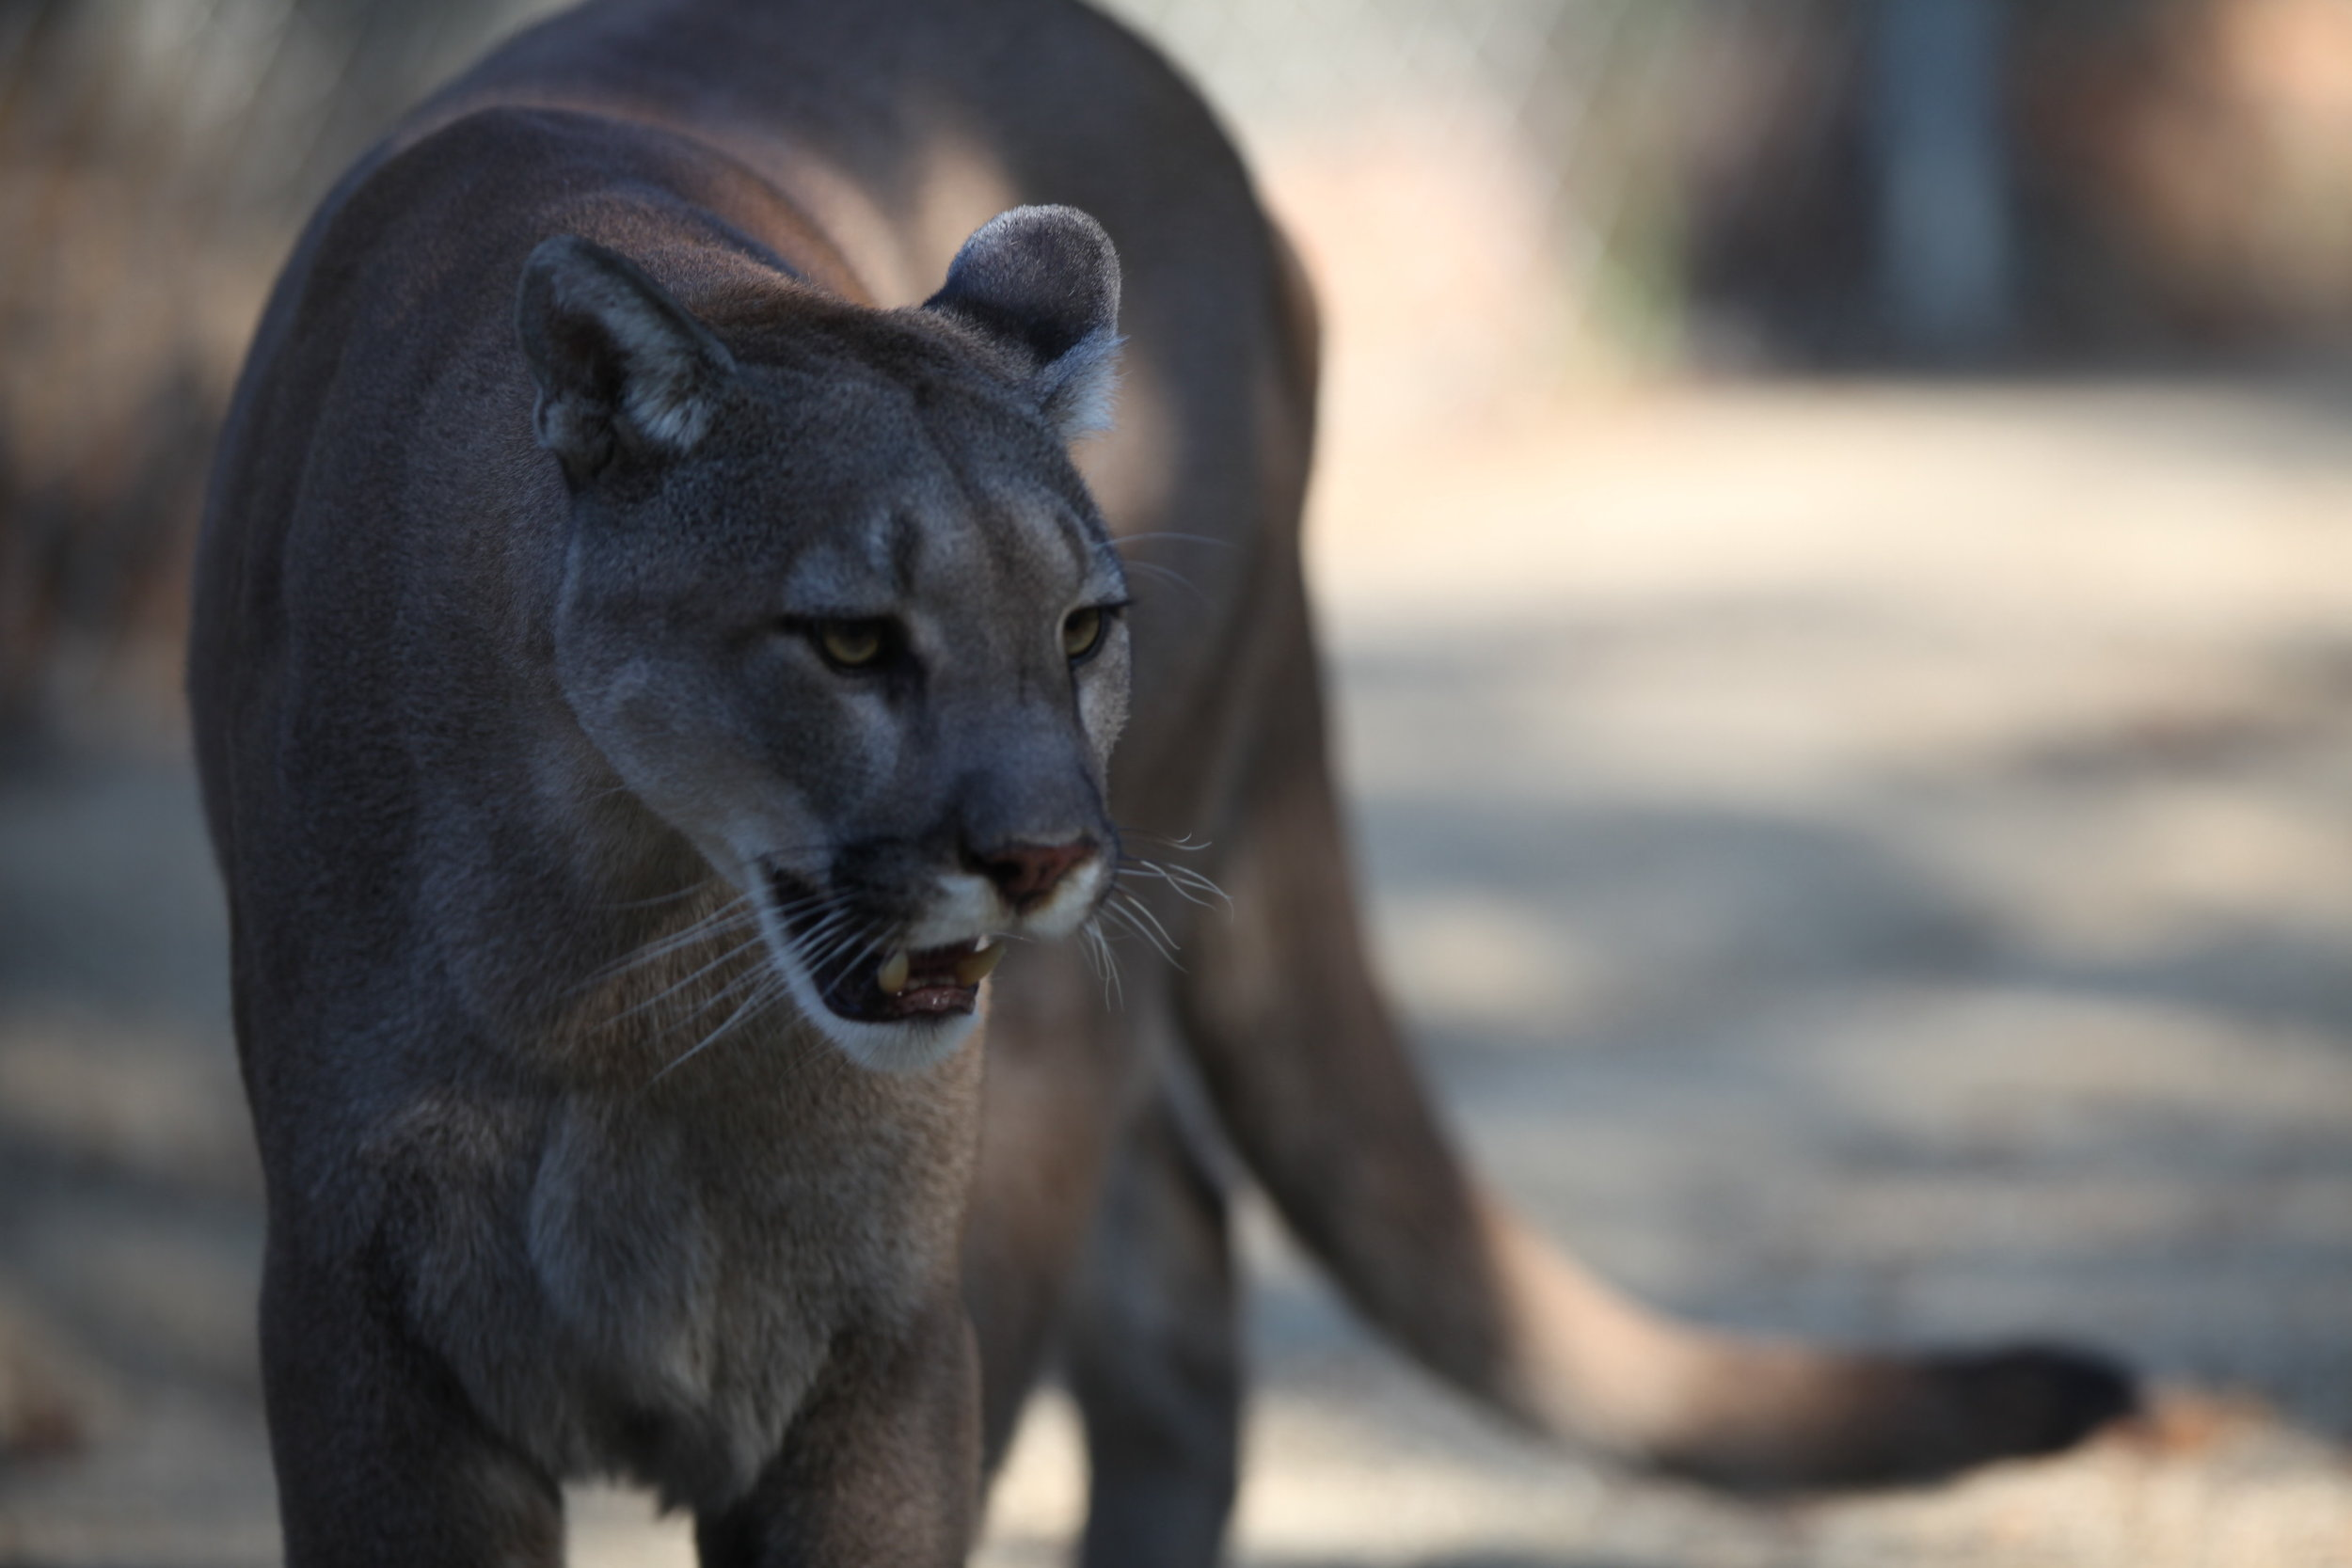 cougar_4_20170915_1820450032-view=image&format=raw&type=orig&id=240.jpg